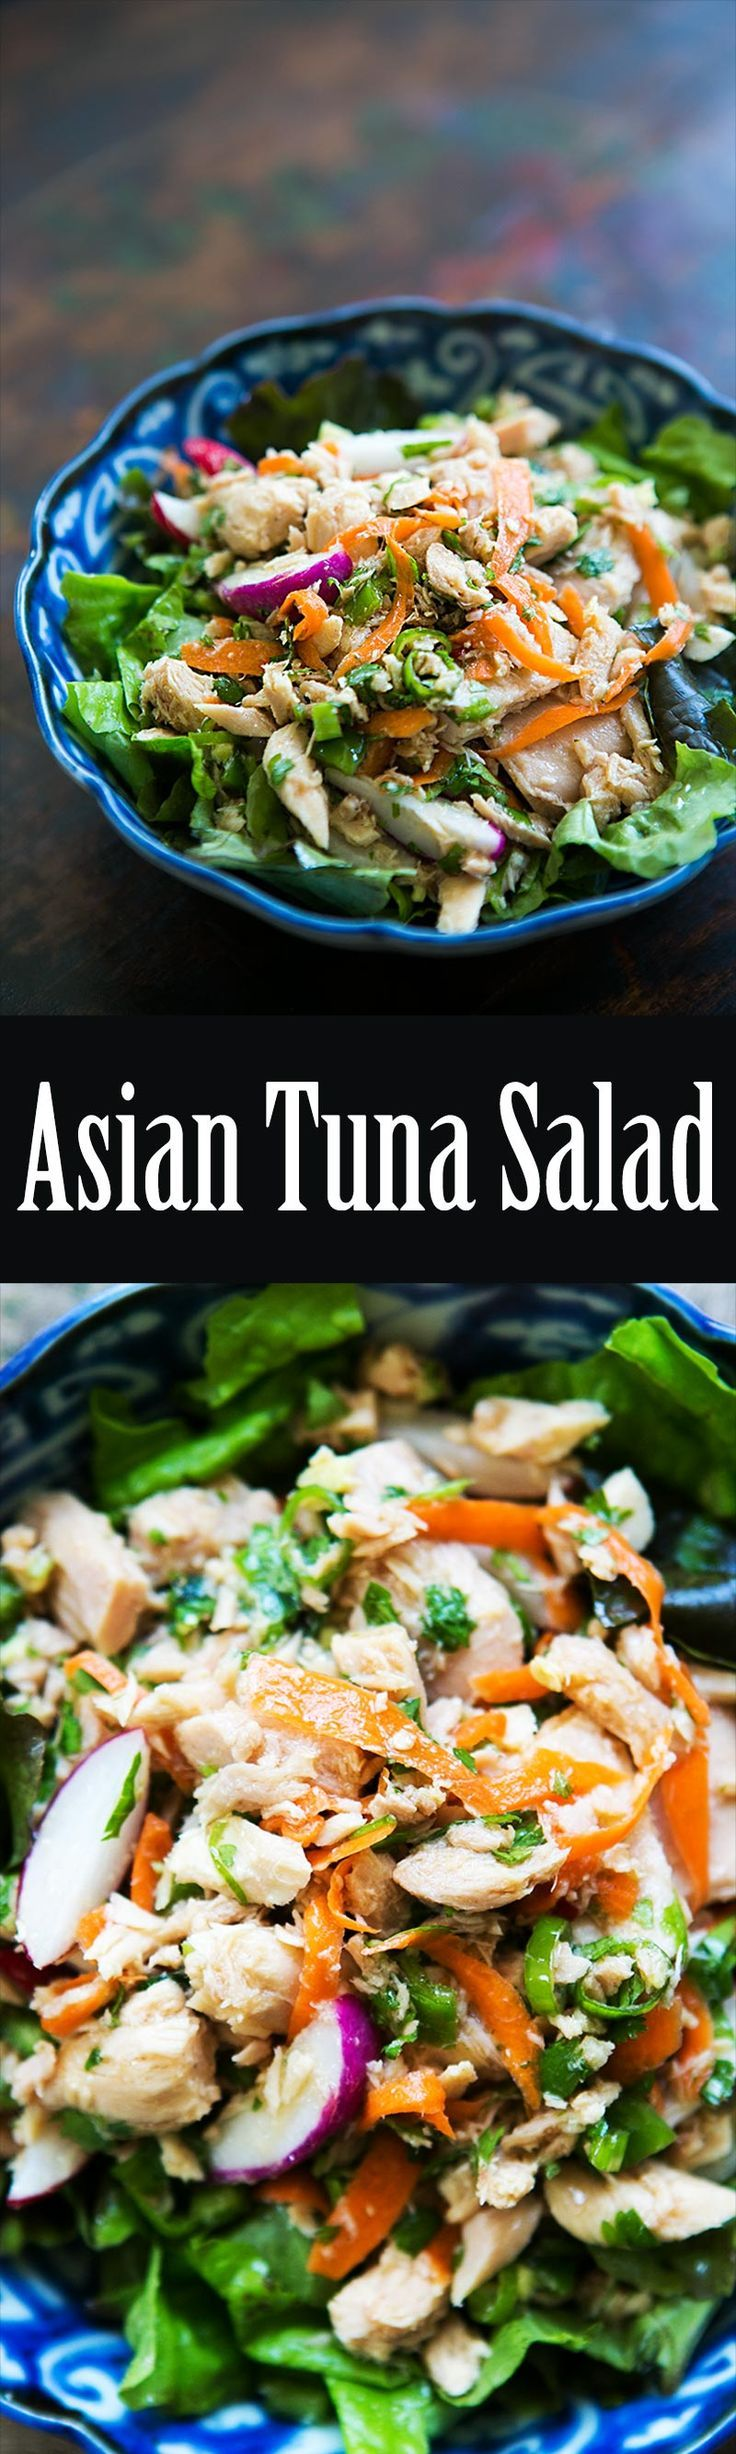 Change to chicken instead. Asian inspired no-mayo tuna salad! with canned tuna, radishes, cilantro, shredded carrot, ginger, rice vinegar and sesame oil. Easy!